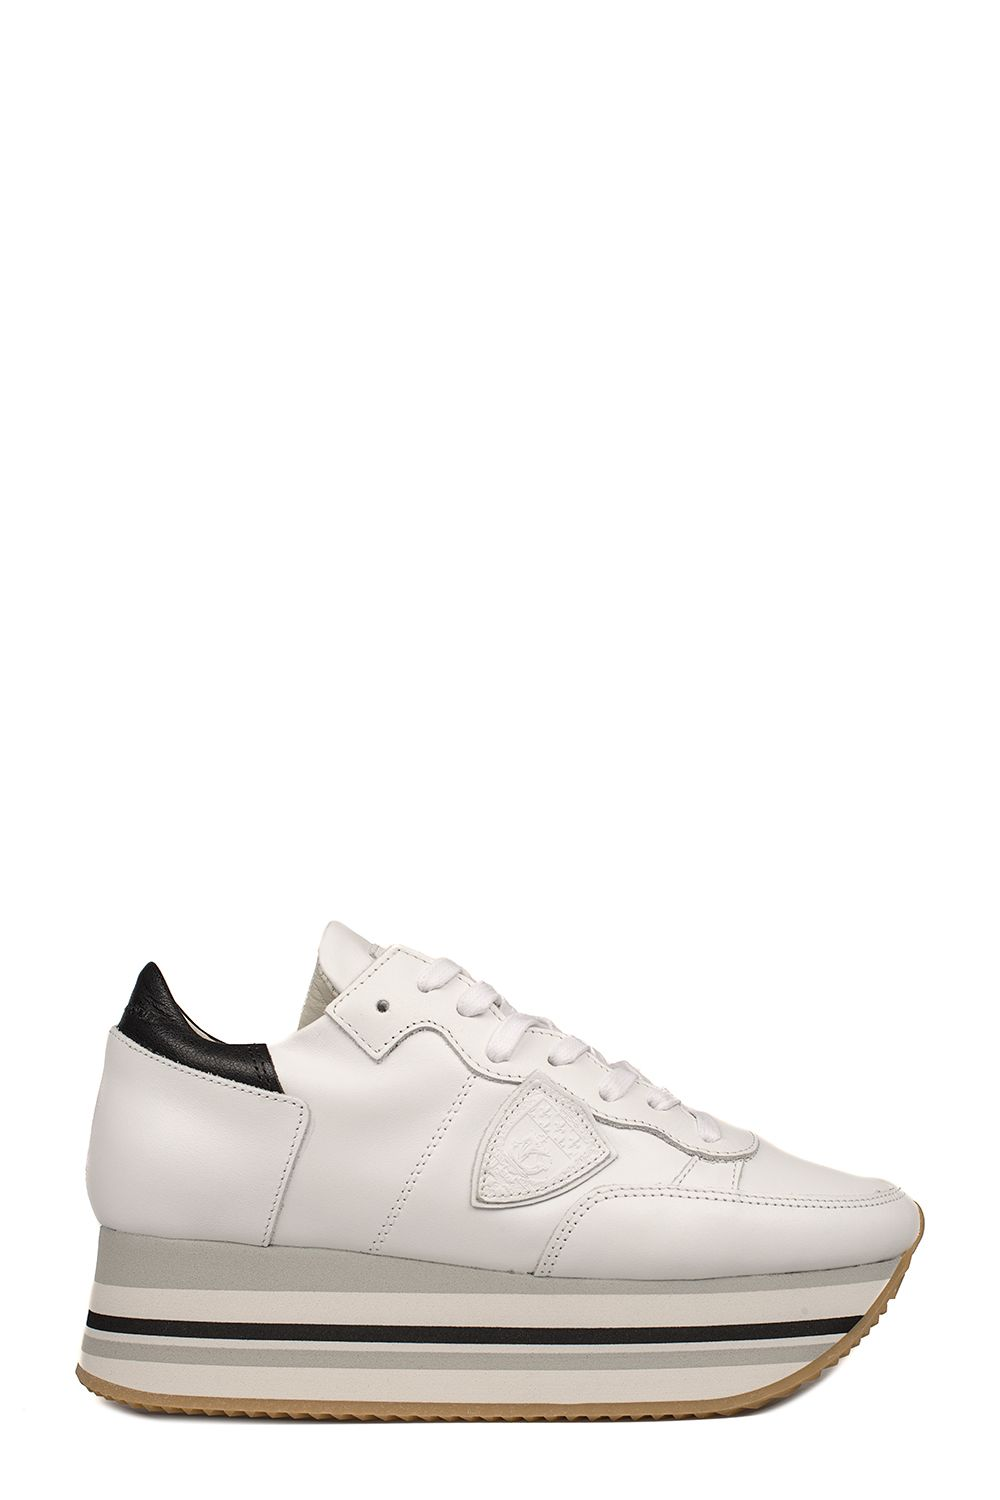 White Eiffel Leather Wedge Sneakers